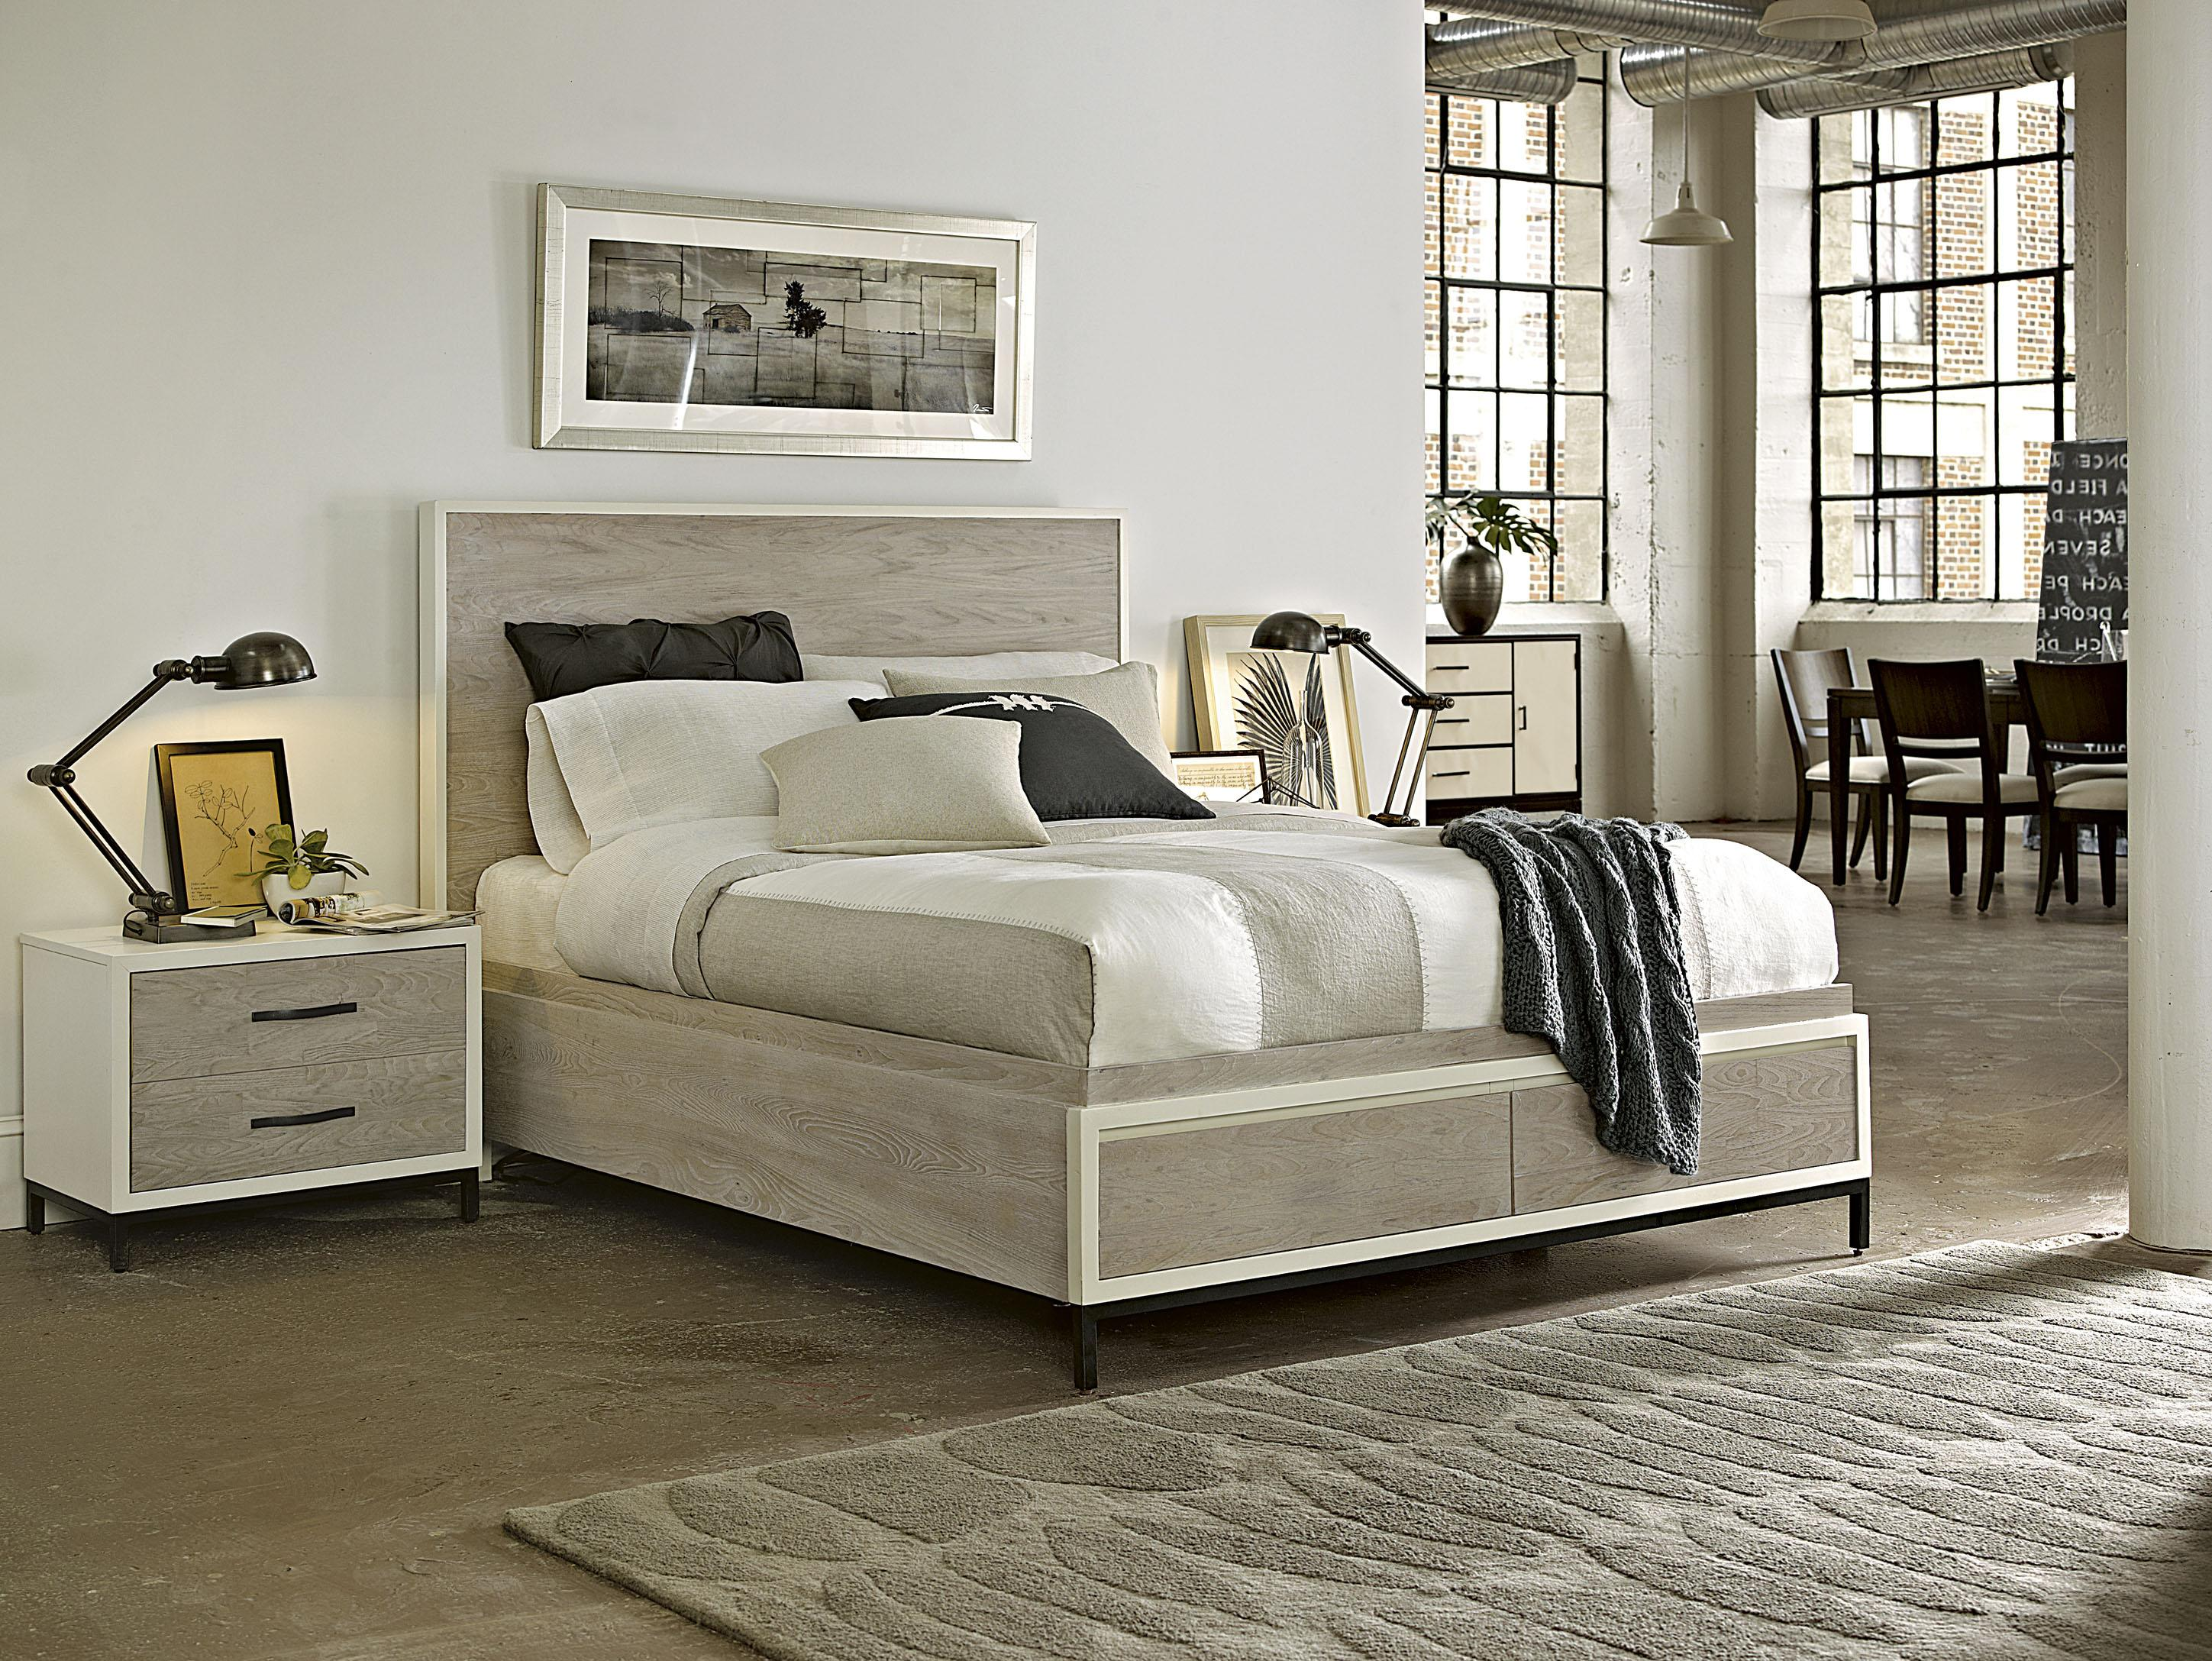 Curated Queen Bedroom Group by Universal at Baer's Furniture